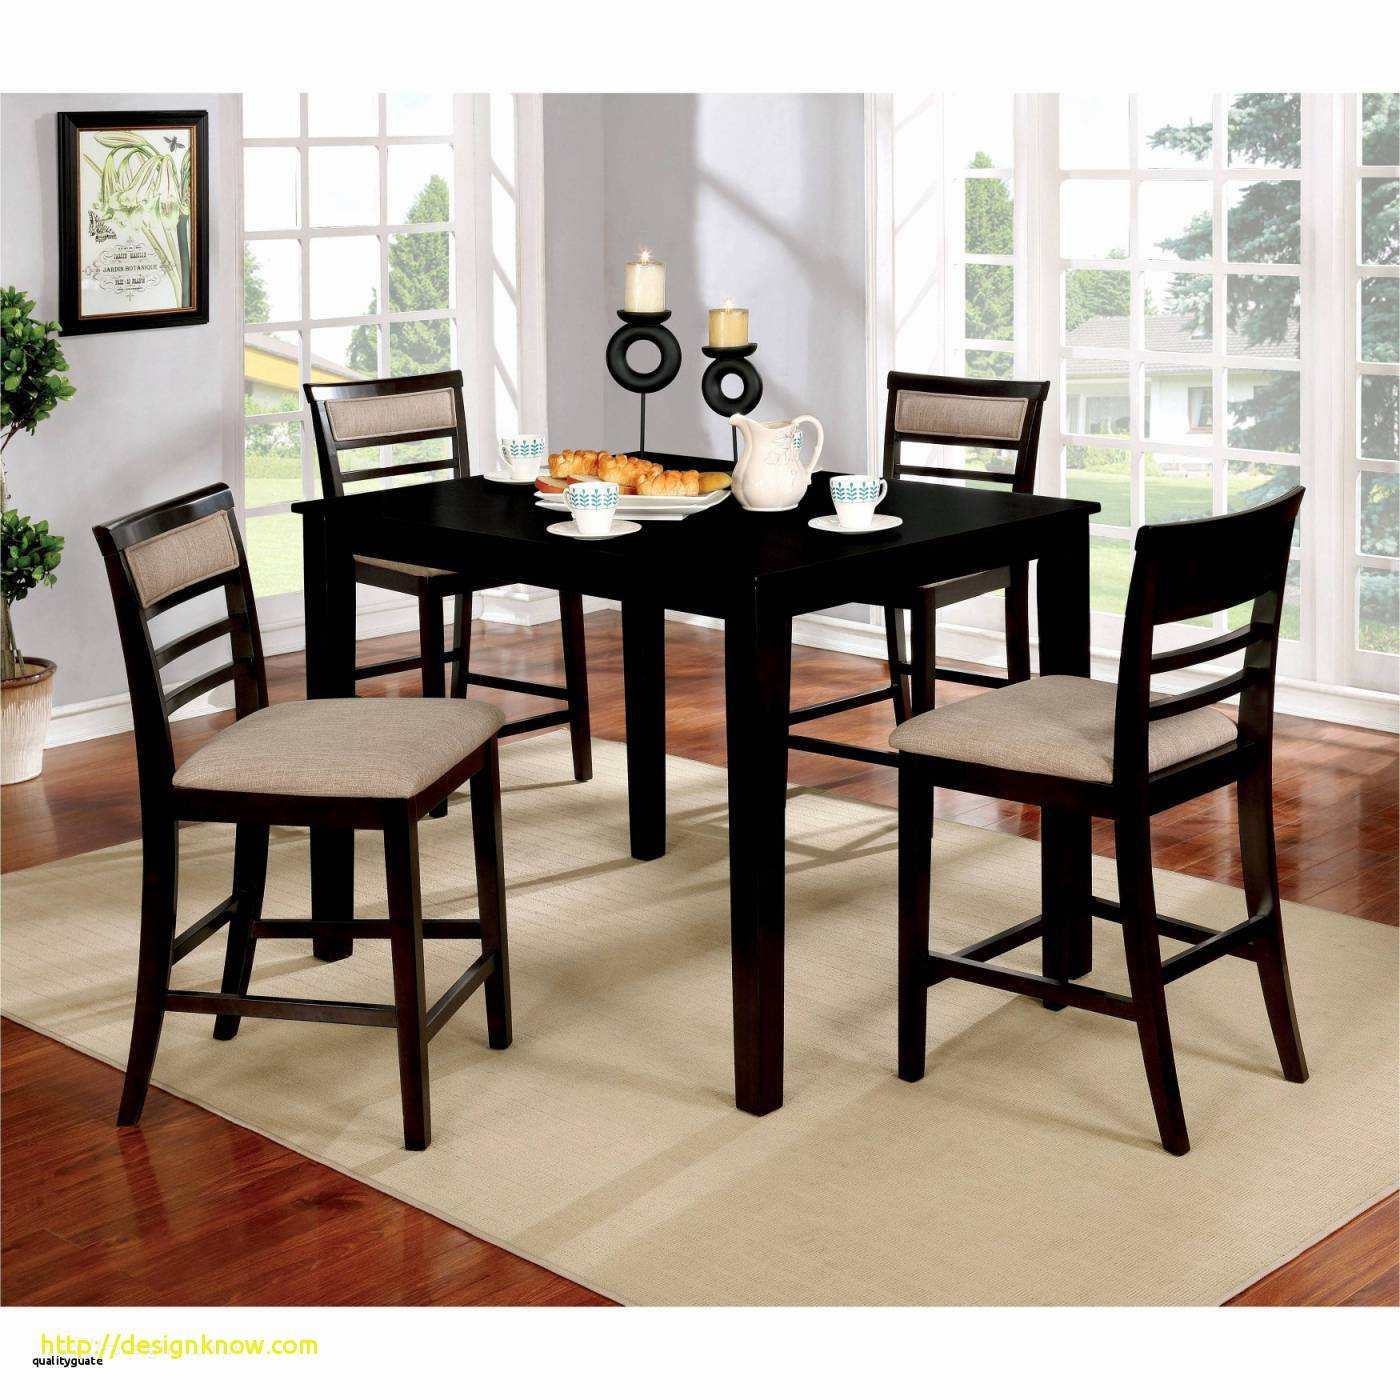 small round kitchen table set best of elegant small dining table set for 2 i blog what i eat of small round kitchen table set